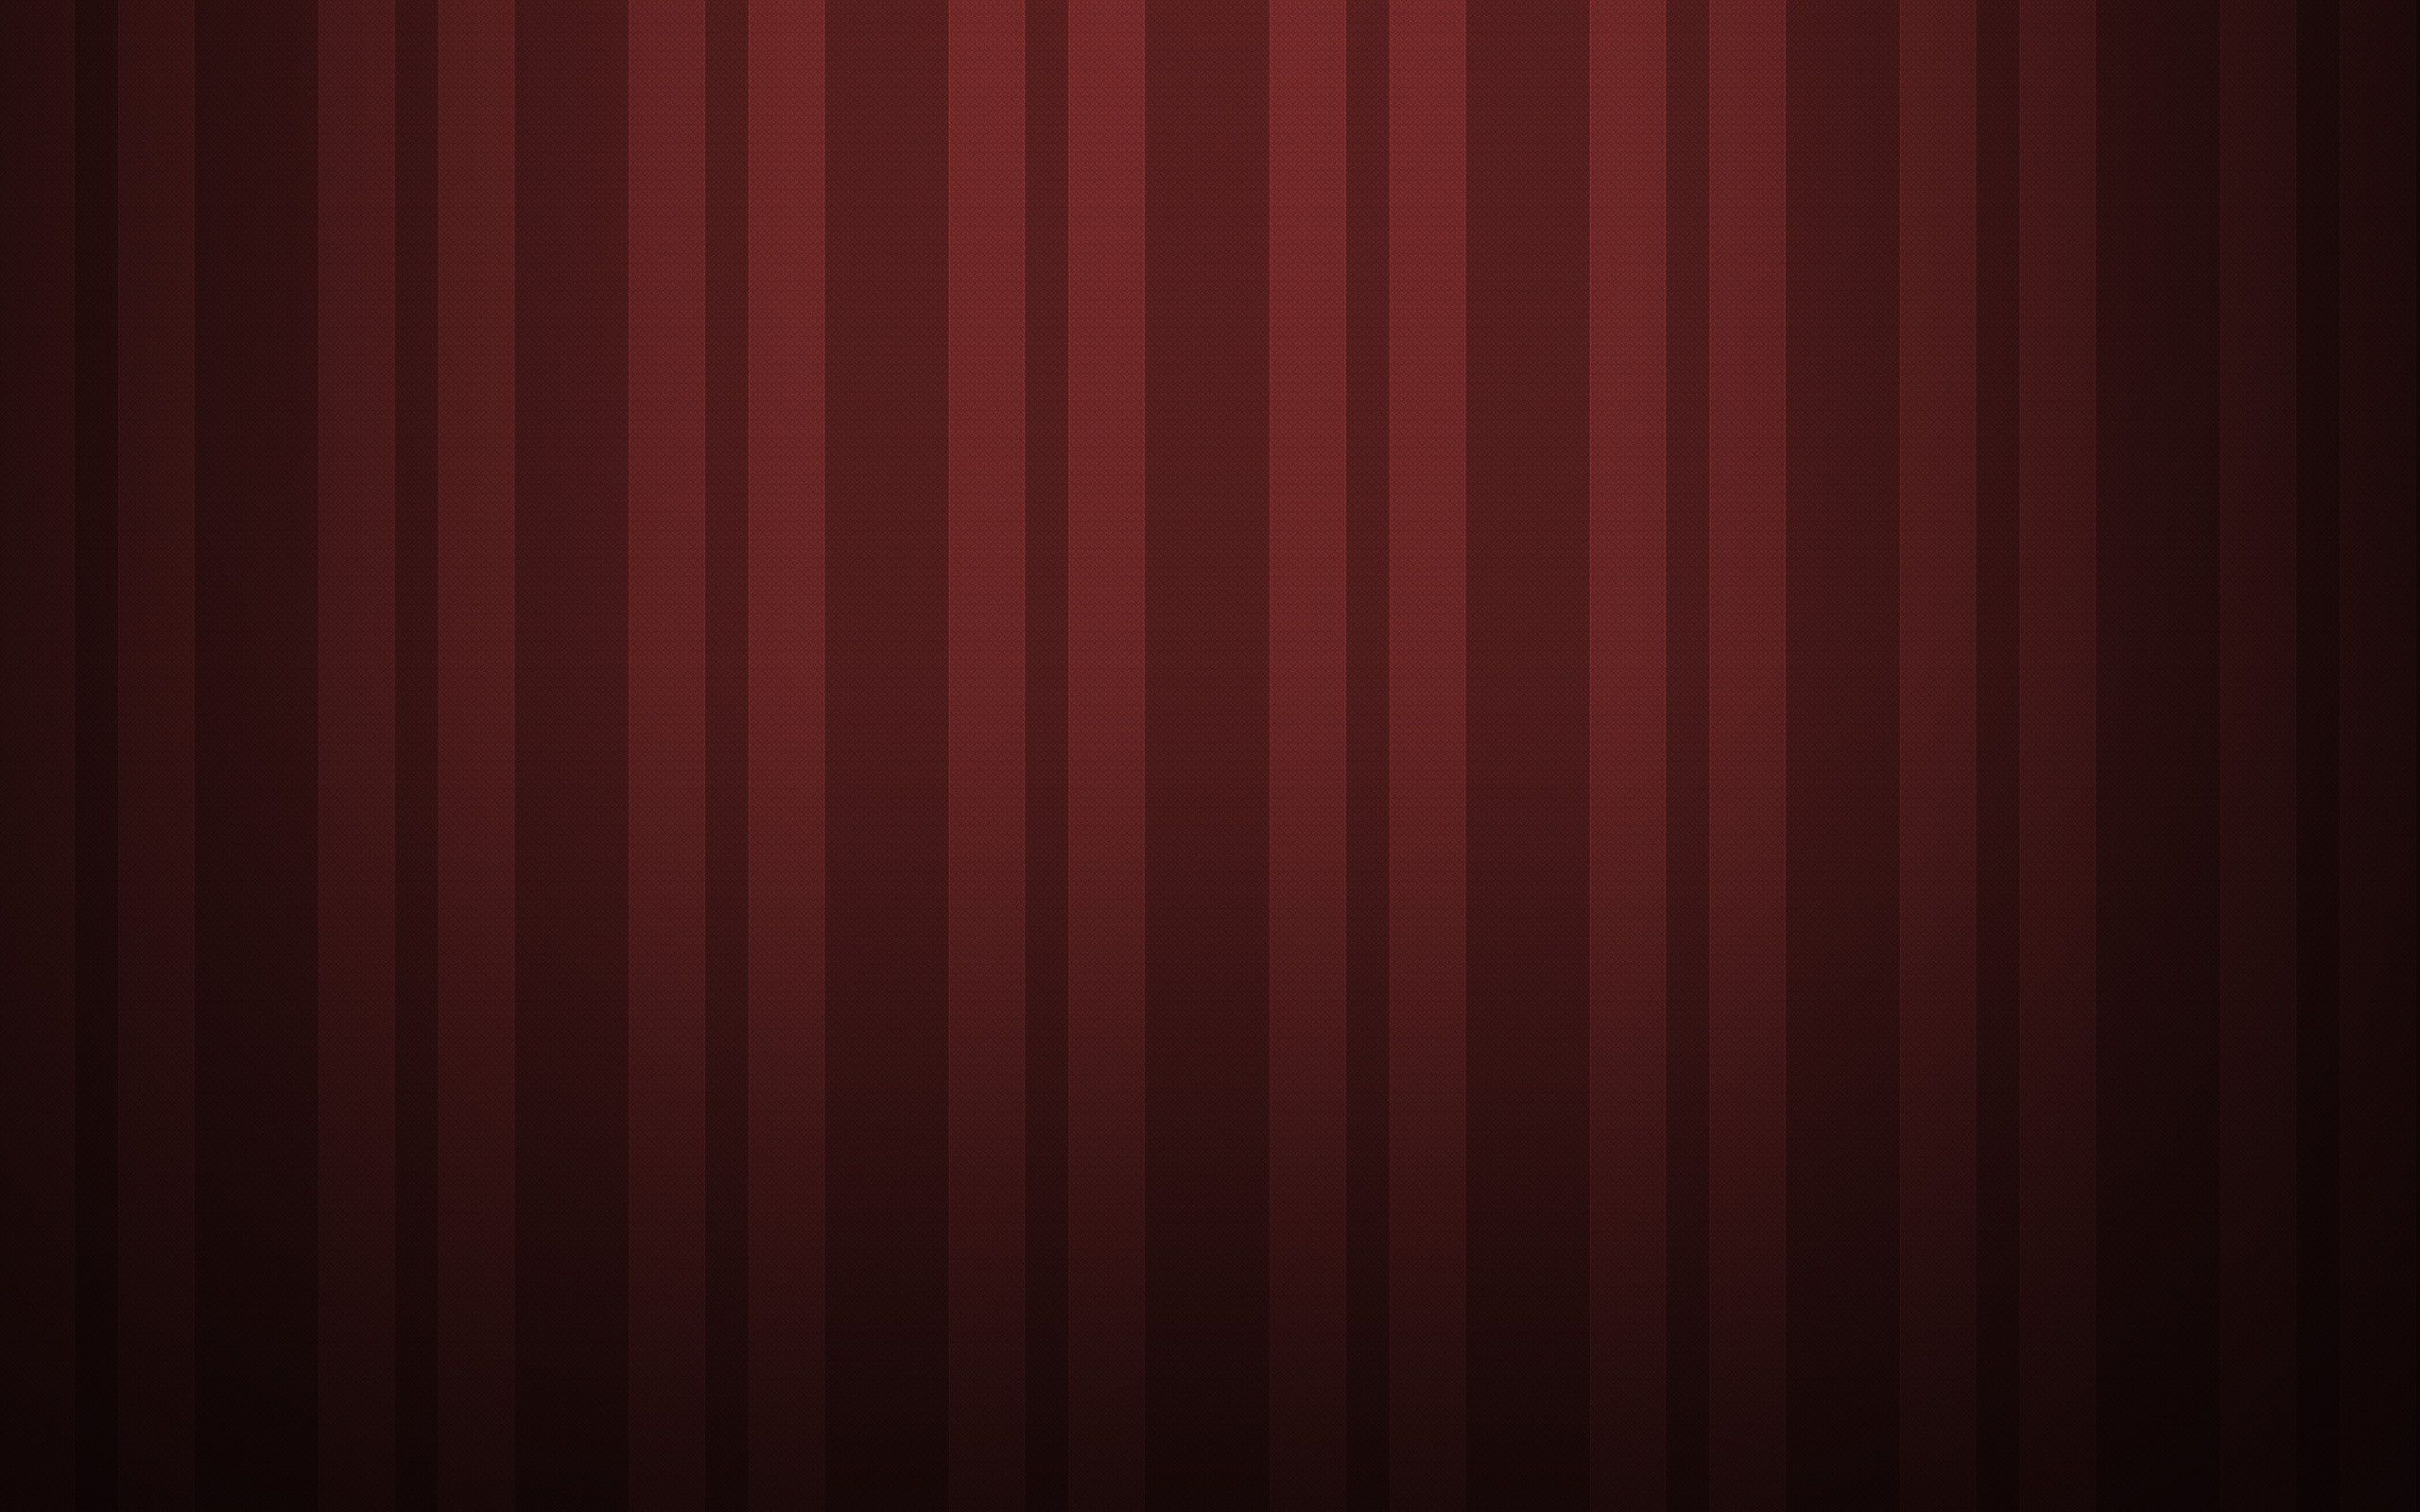 Red And Black Striped Wallpaper Fresh Pattern Stripes Wallpapers Of Red And Black Striped Wal Red Wallpaper Striped Wallpaper Red Striped Wallpaper